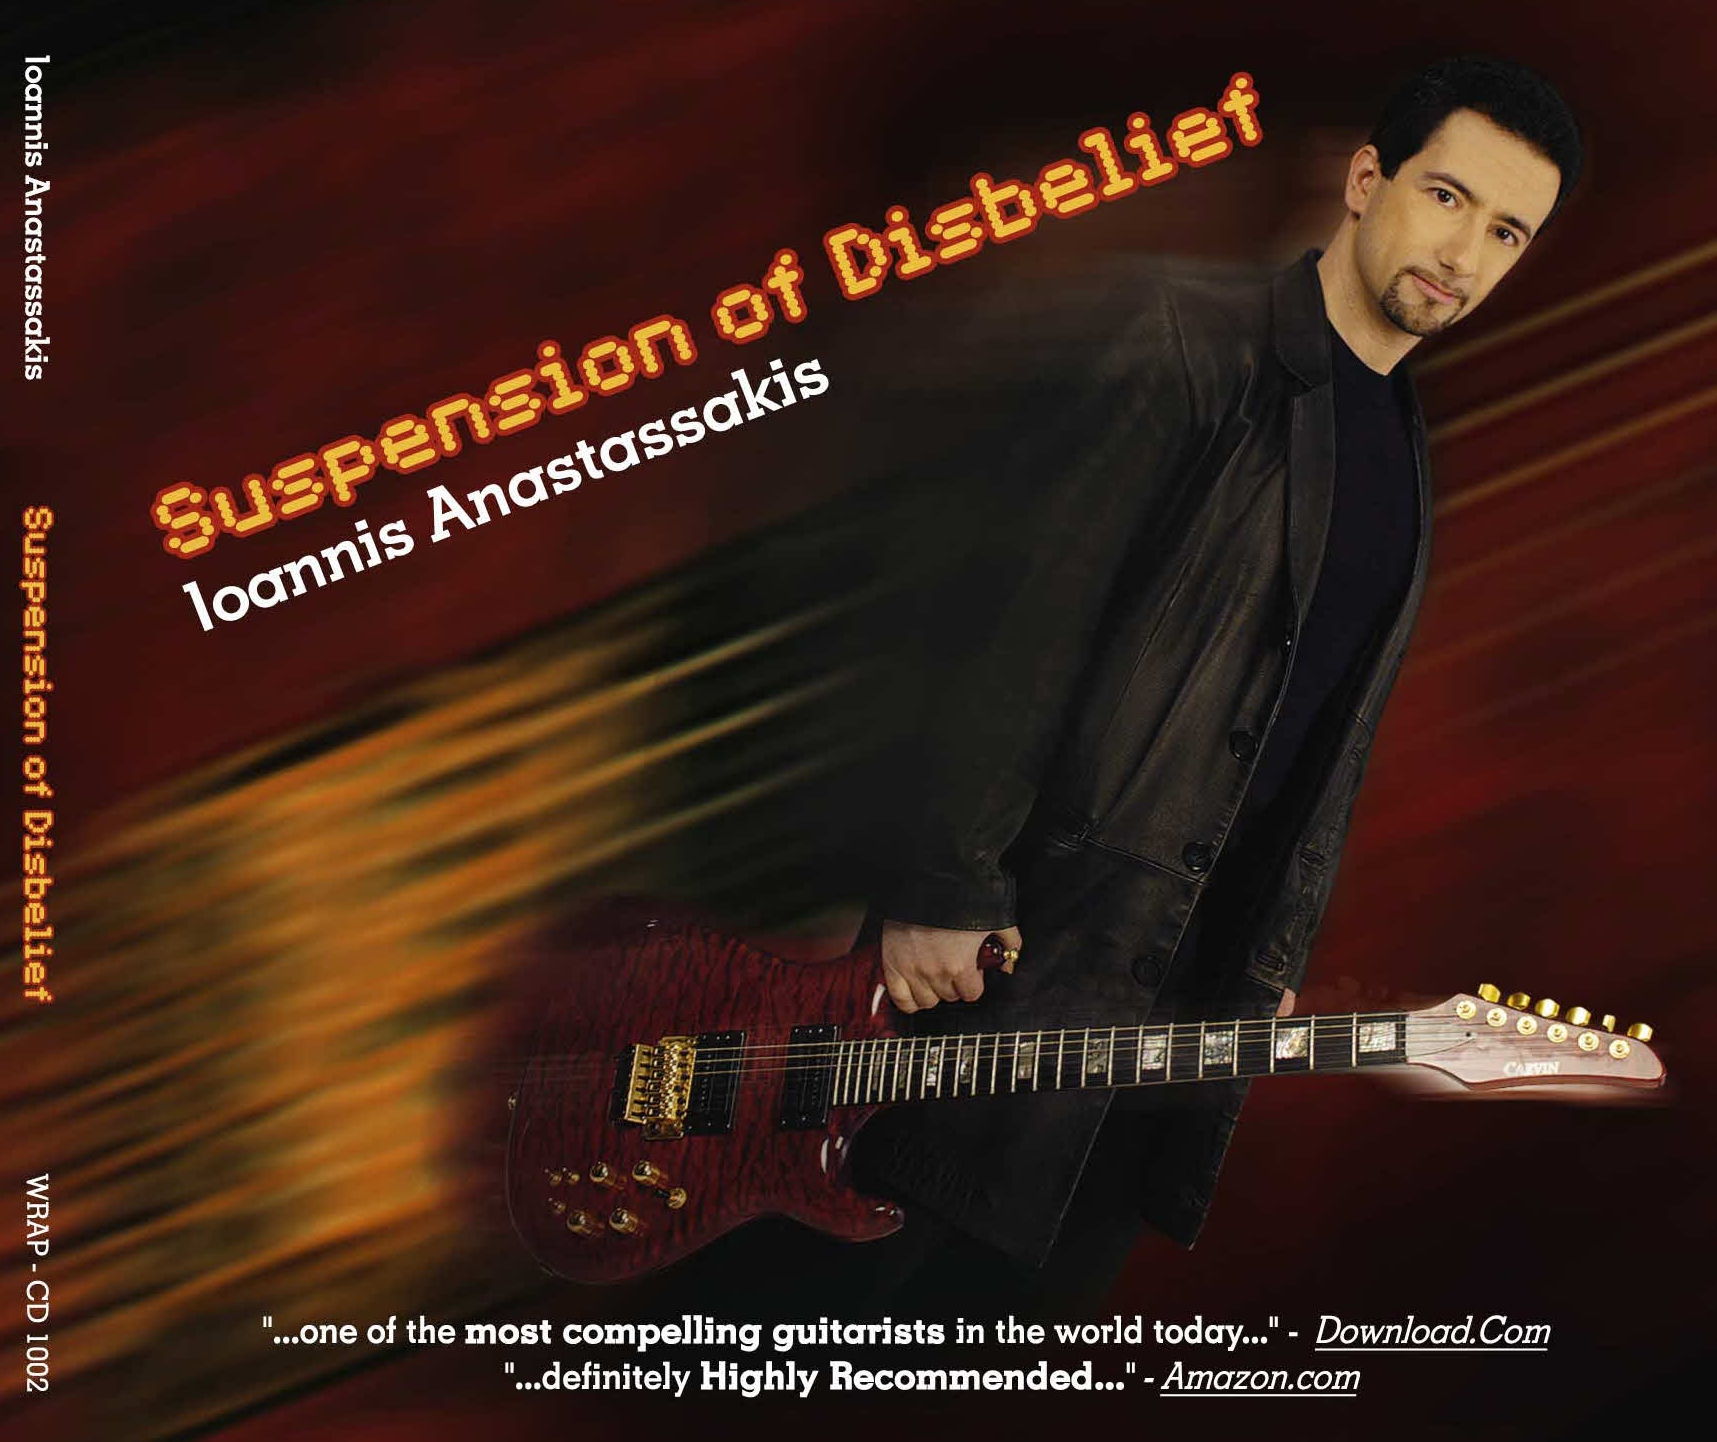 ioannis-anastassakis-suspension-of-disbelief-2007-cd-front